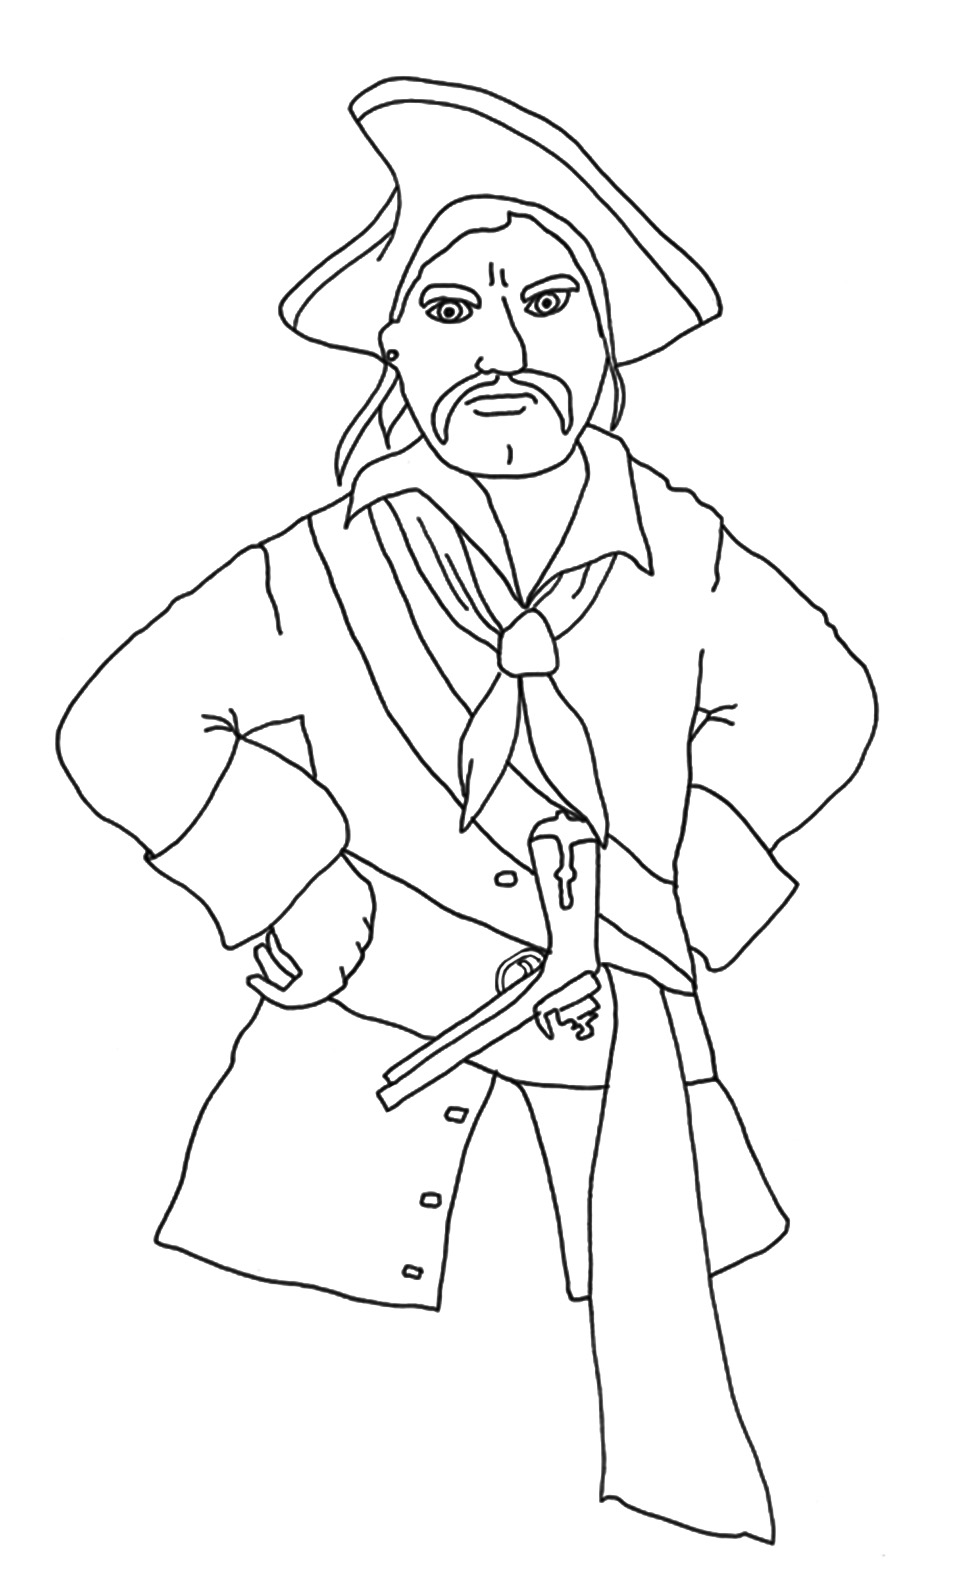 coloring pages com | Pirate Coloring Pages